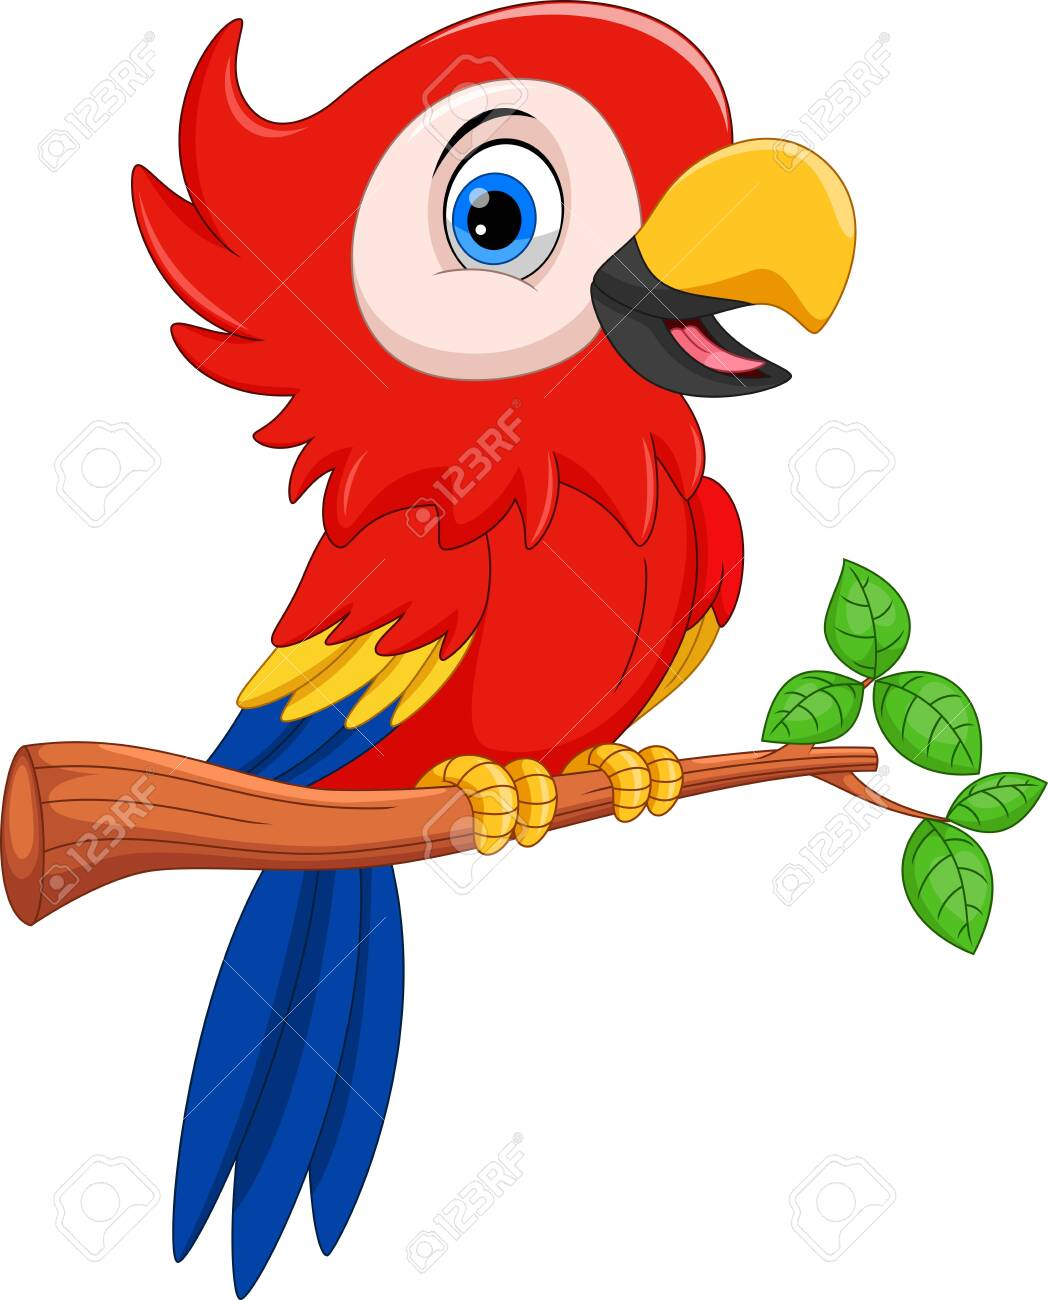 Vector illustration of Cartoon parrot on tree branch isolated on white background - 123744197